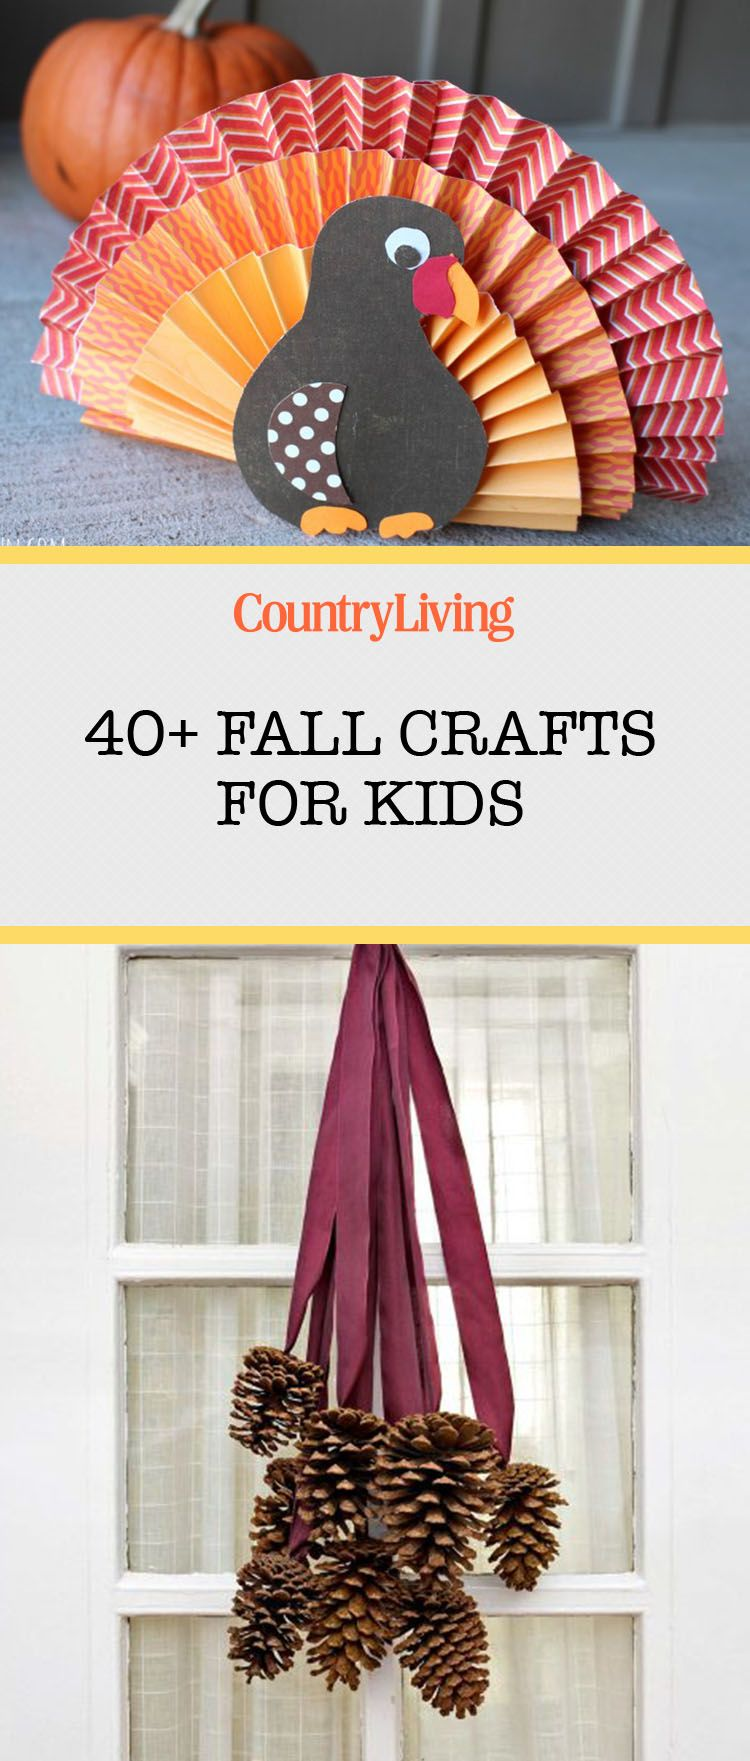 45 fall crafts for kids fall activities and project ideas for kids - Fall Crafts